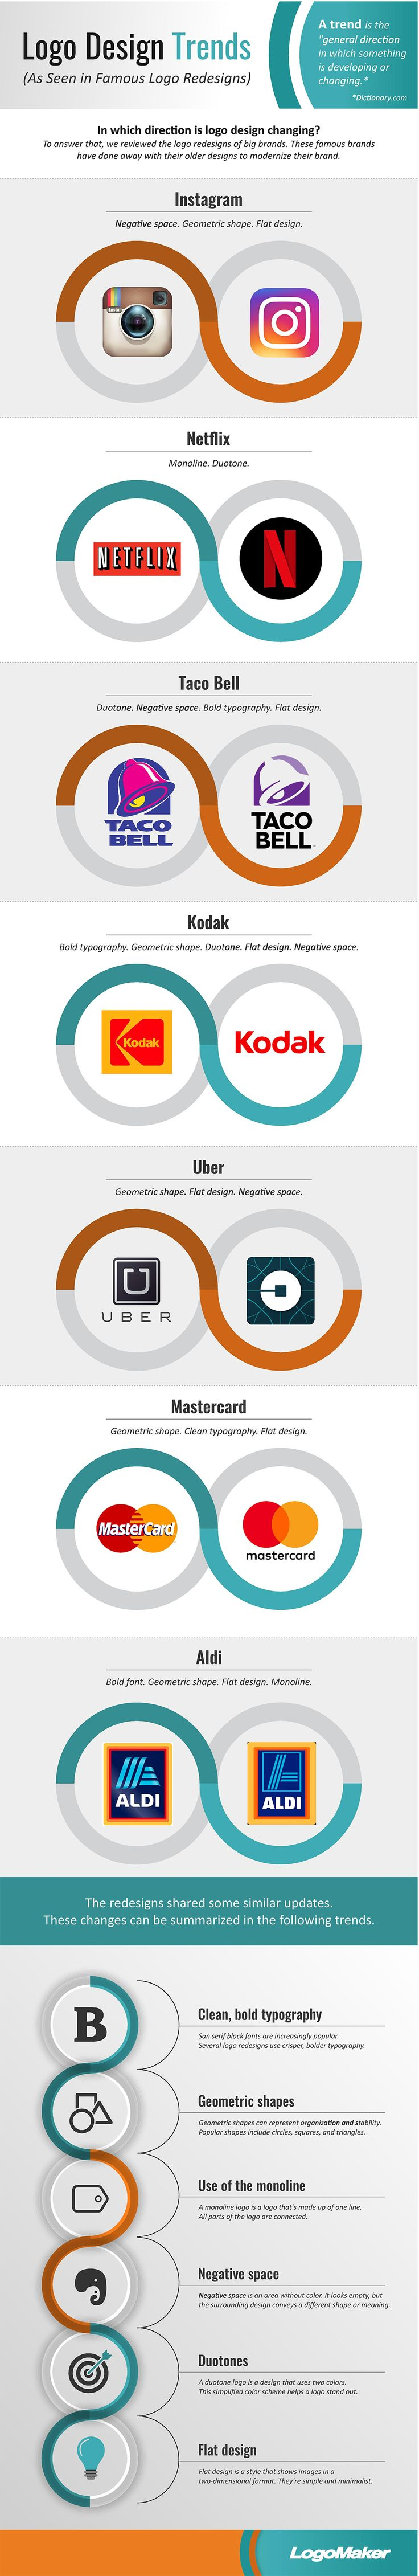 Logo Design Idea idea logo design free vector logo design idea 6 Modern Logo Design Trends As Seen In Famous Logo Redesigns Infographic